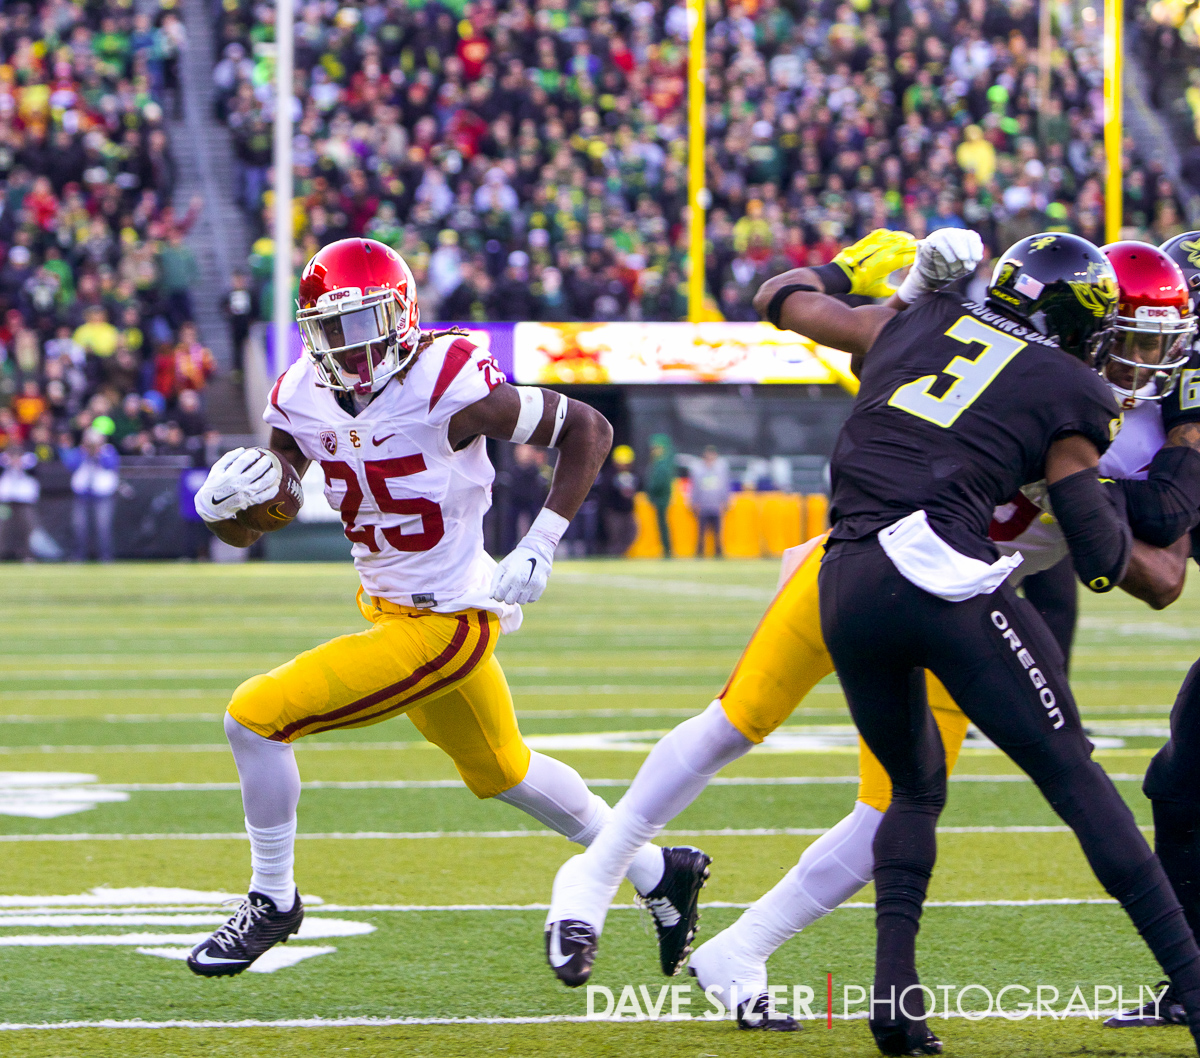 USC tailback Ronald Jones gets to the outside for a TD.